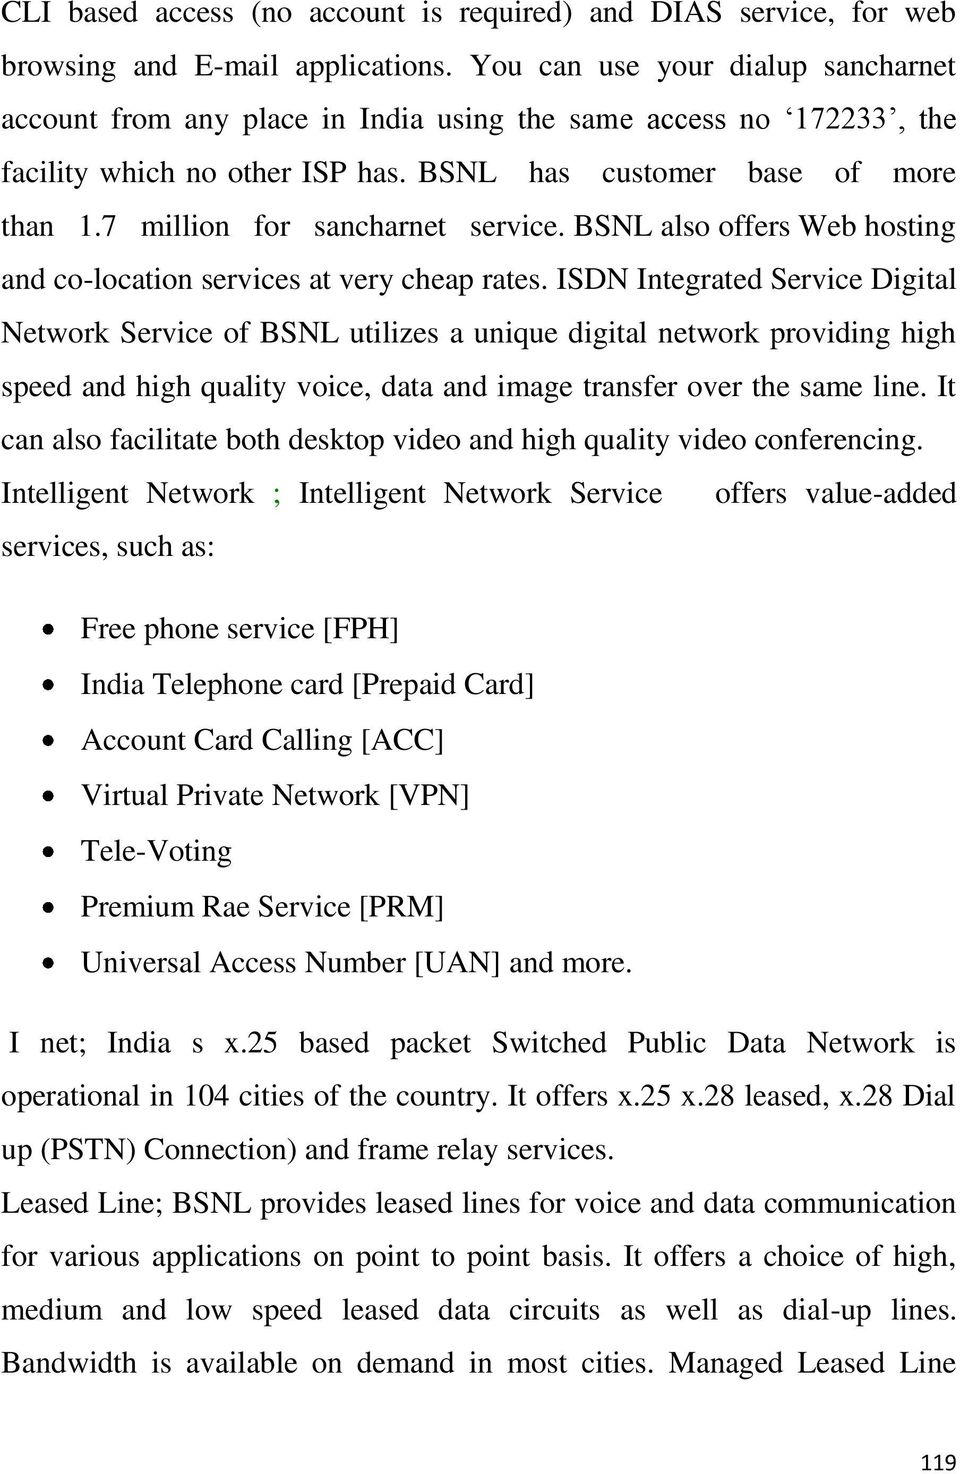 7 million for sancharnet service. BSNL also offers Web hosting and co-location services at very cheap rates.